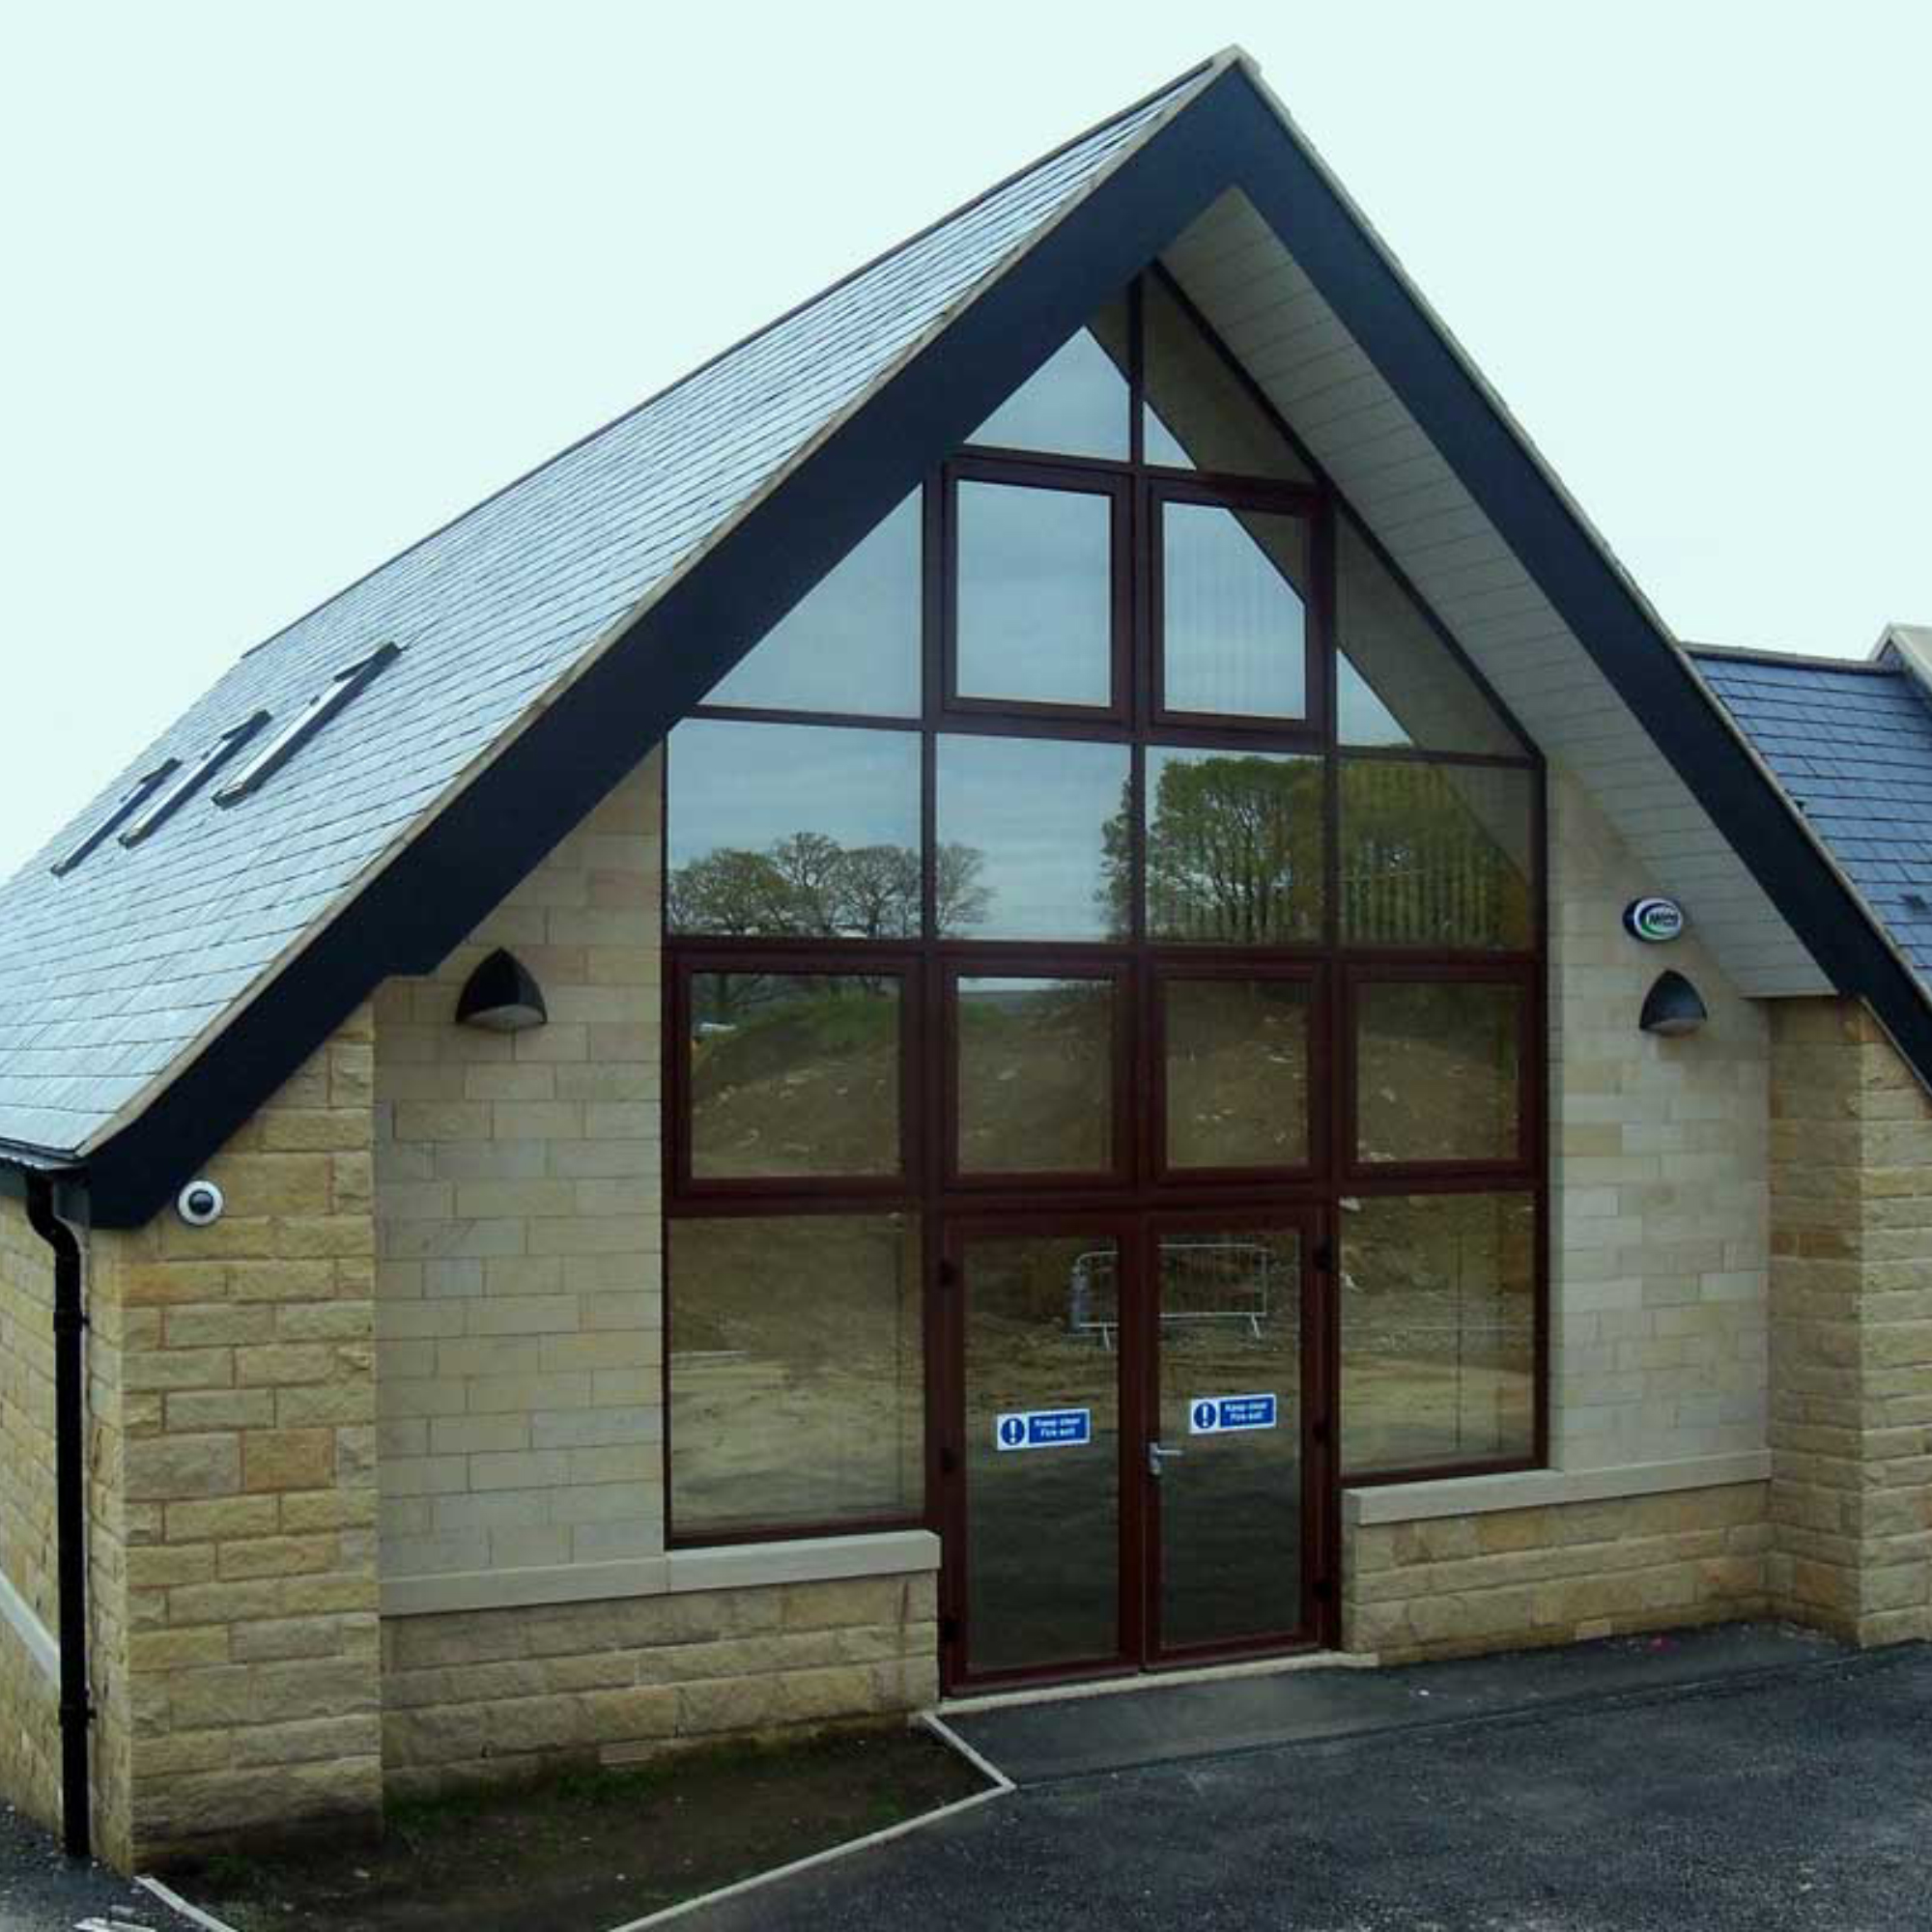 Heptonstall School – Hebden Bridge - 1